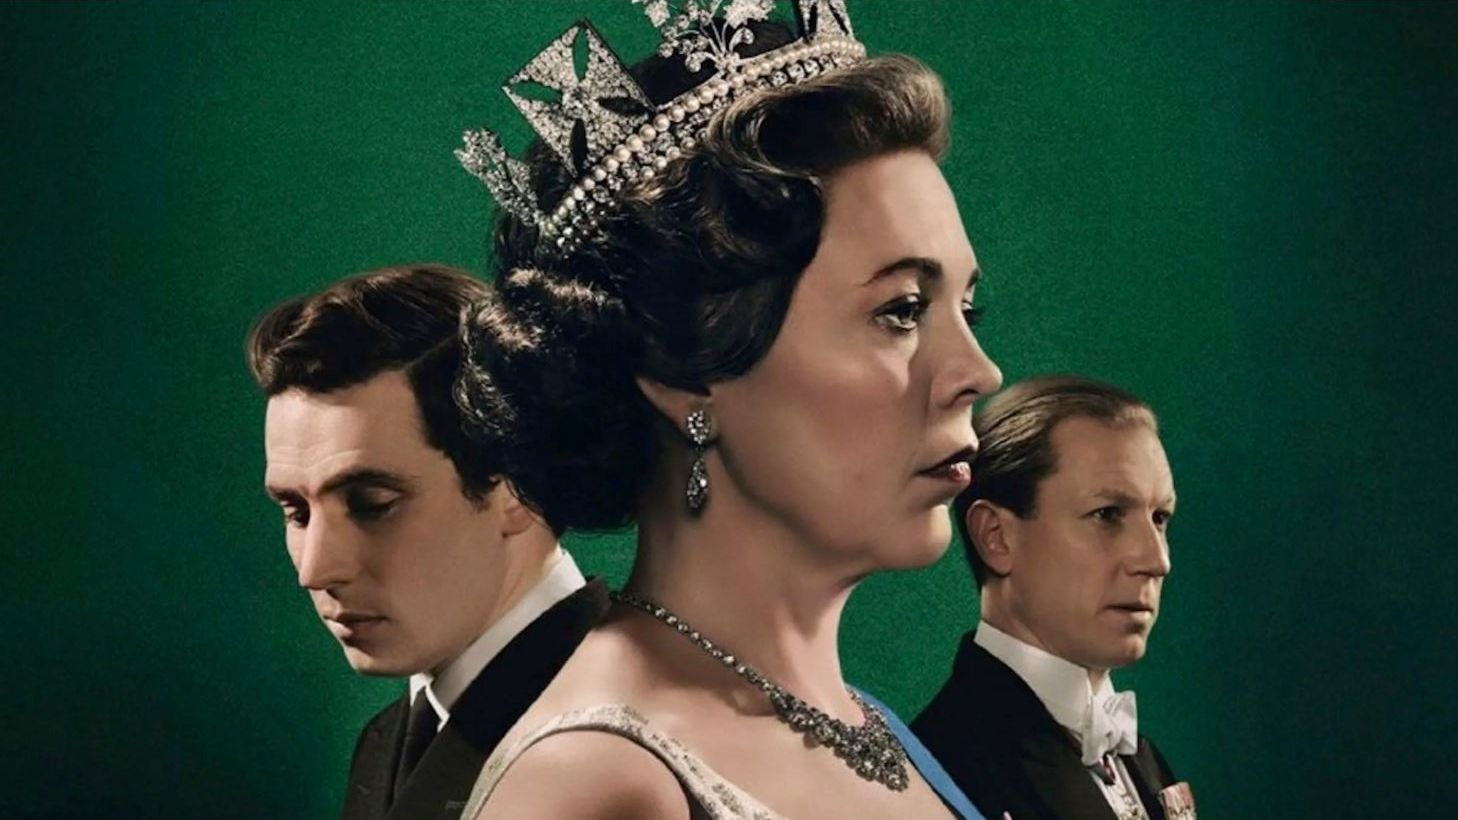 The Crown Season 4 Trailer and Release Date